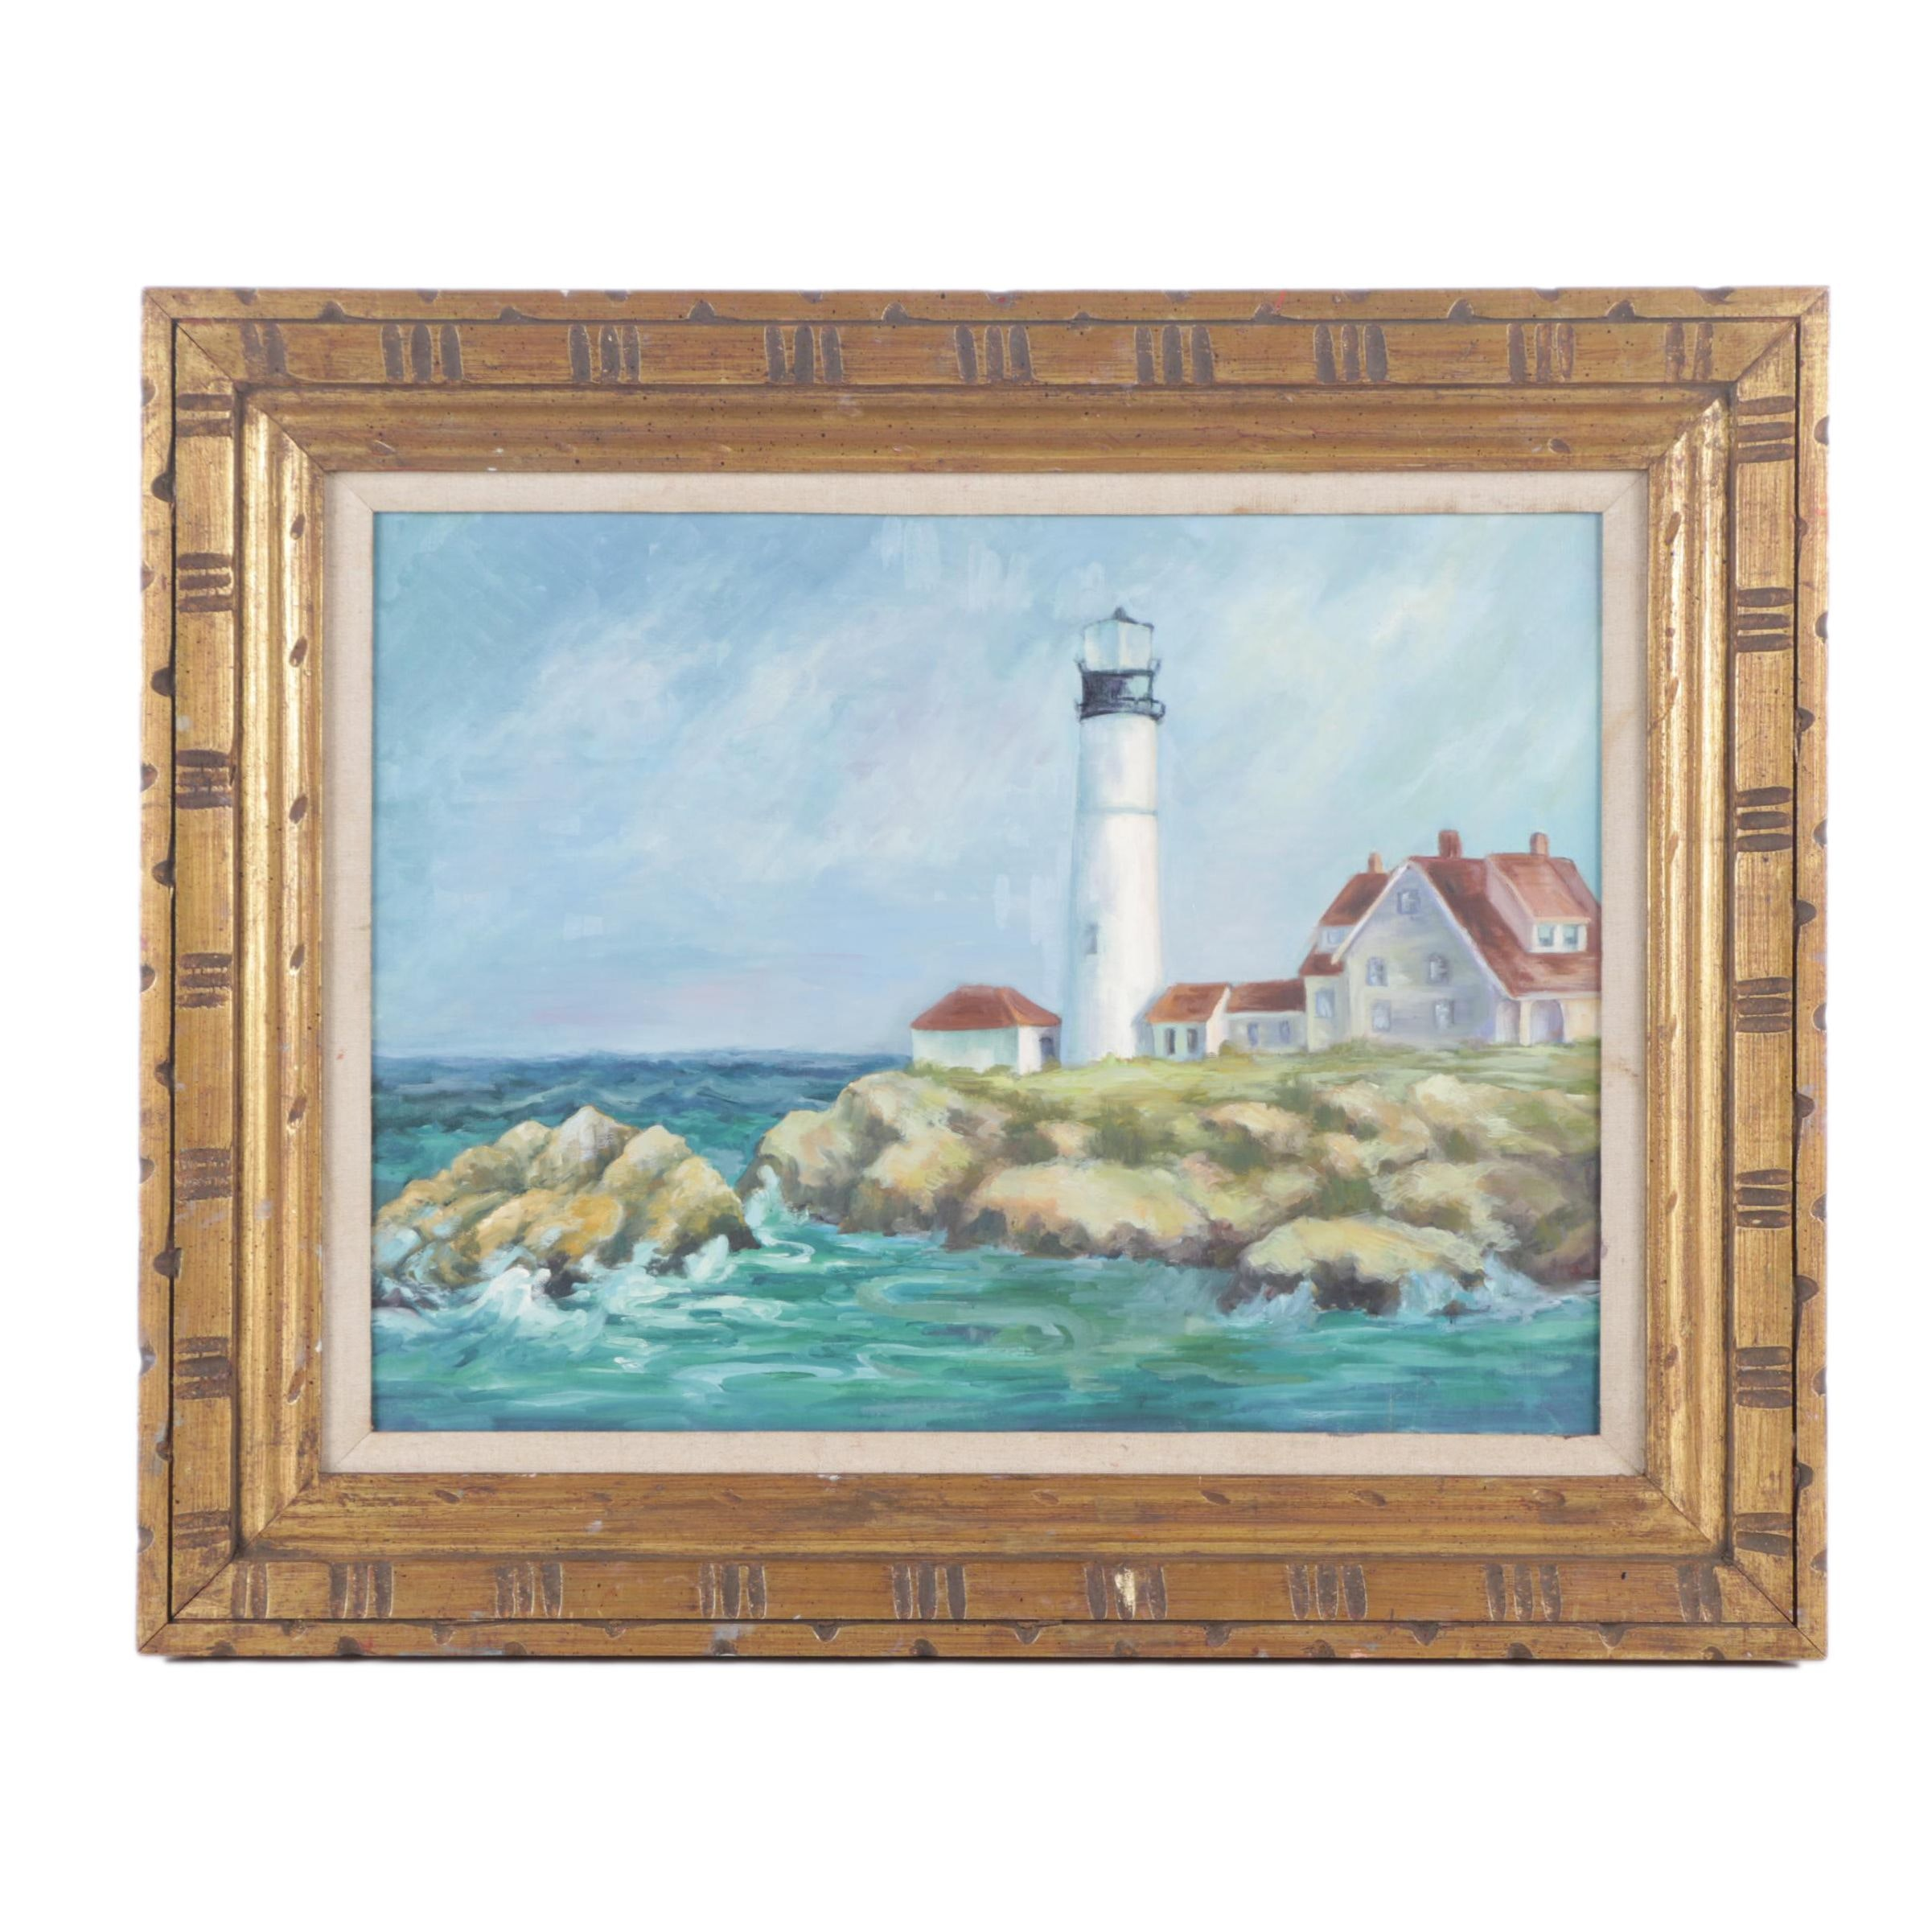 Oil Painting on Canvas Board of a Light House